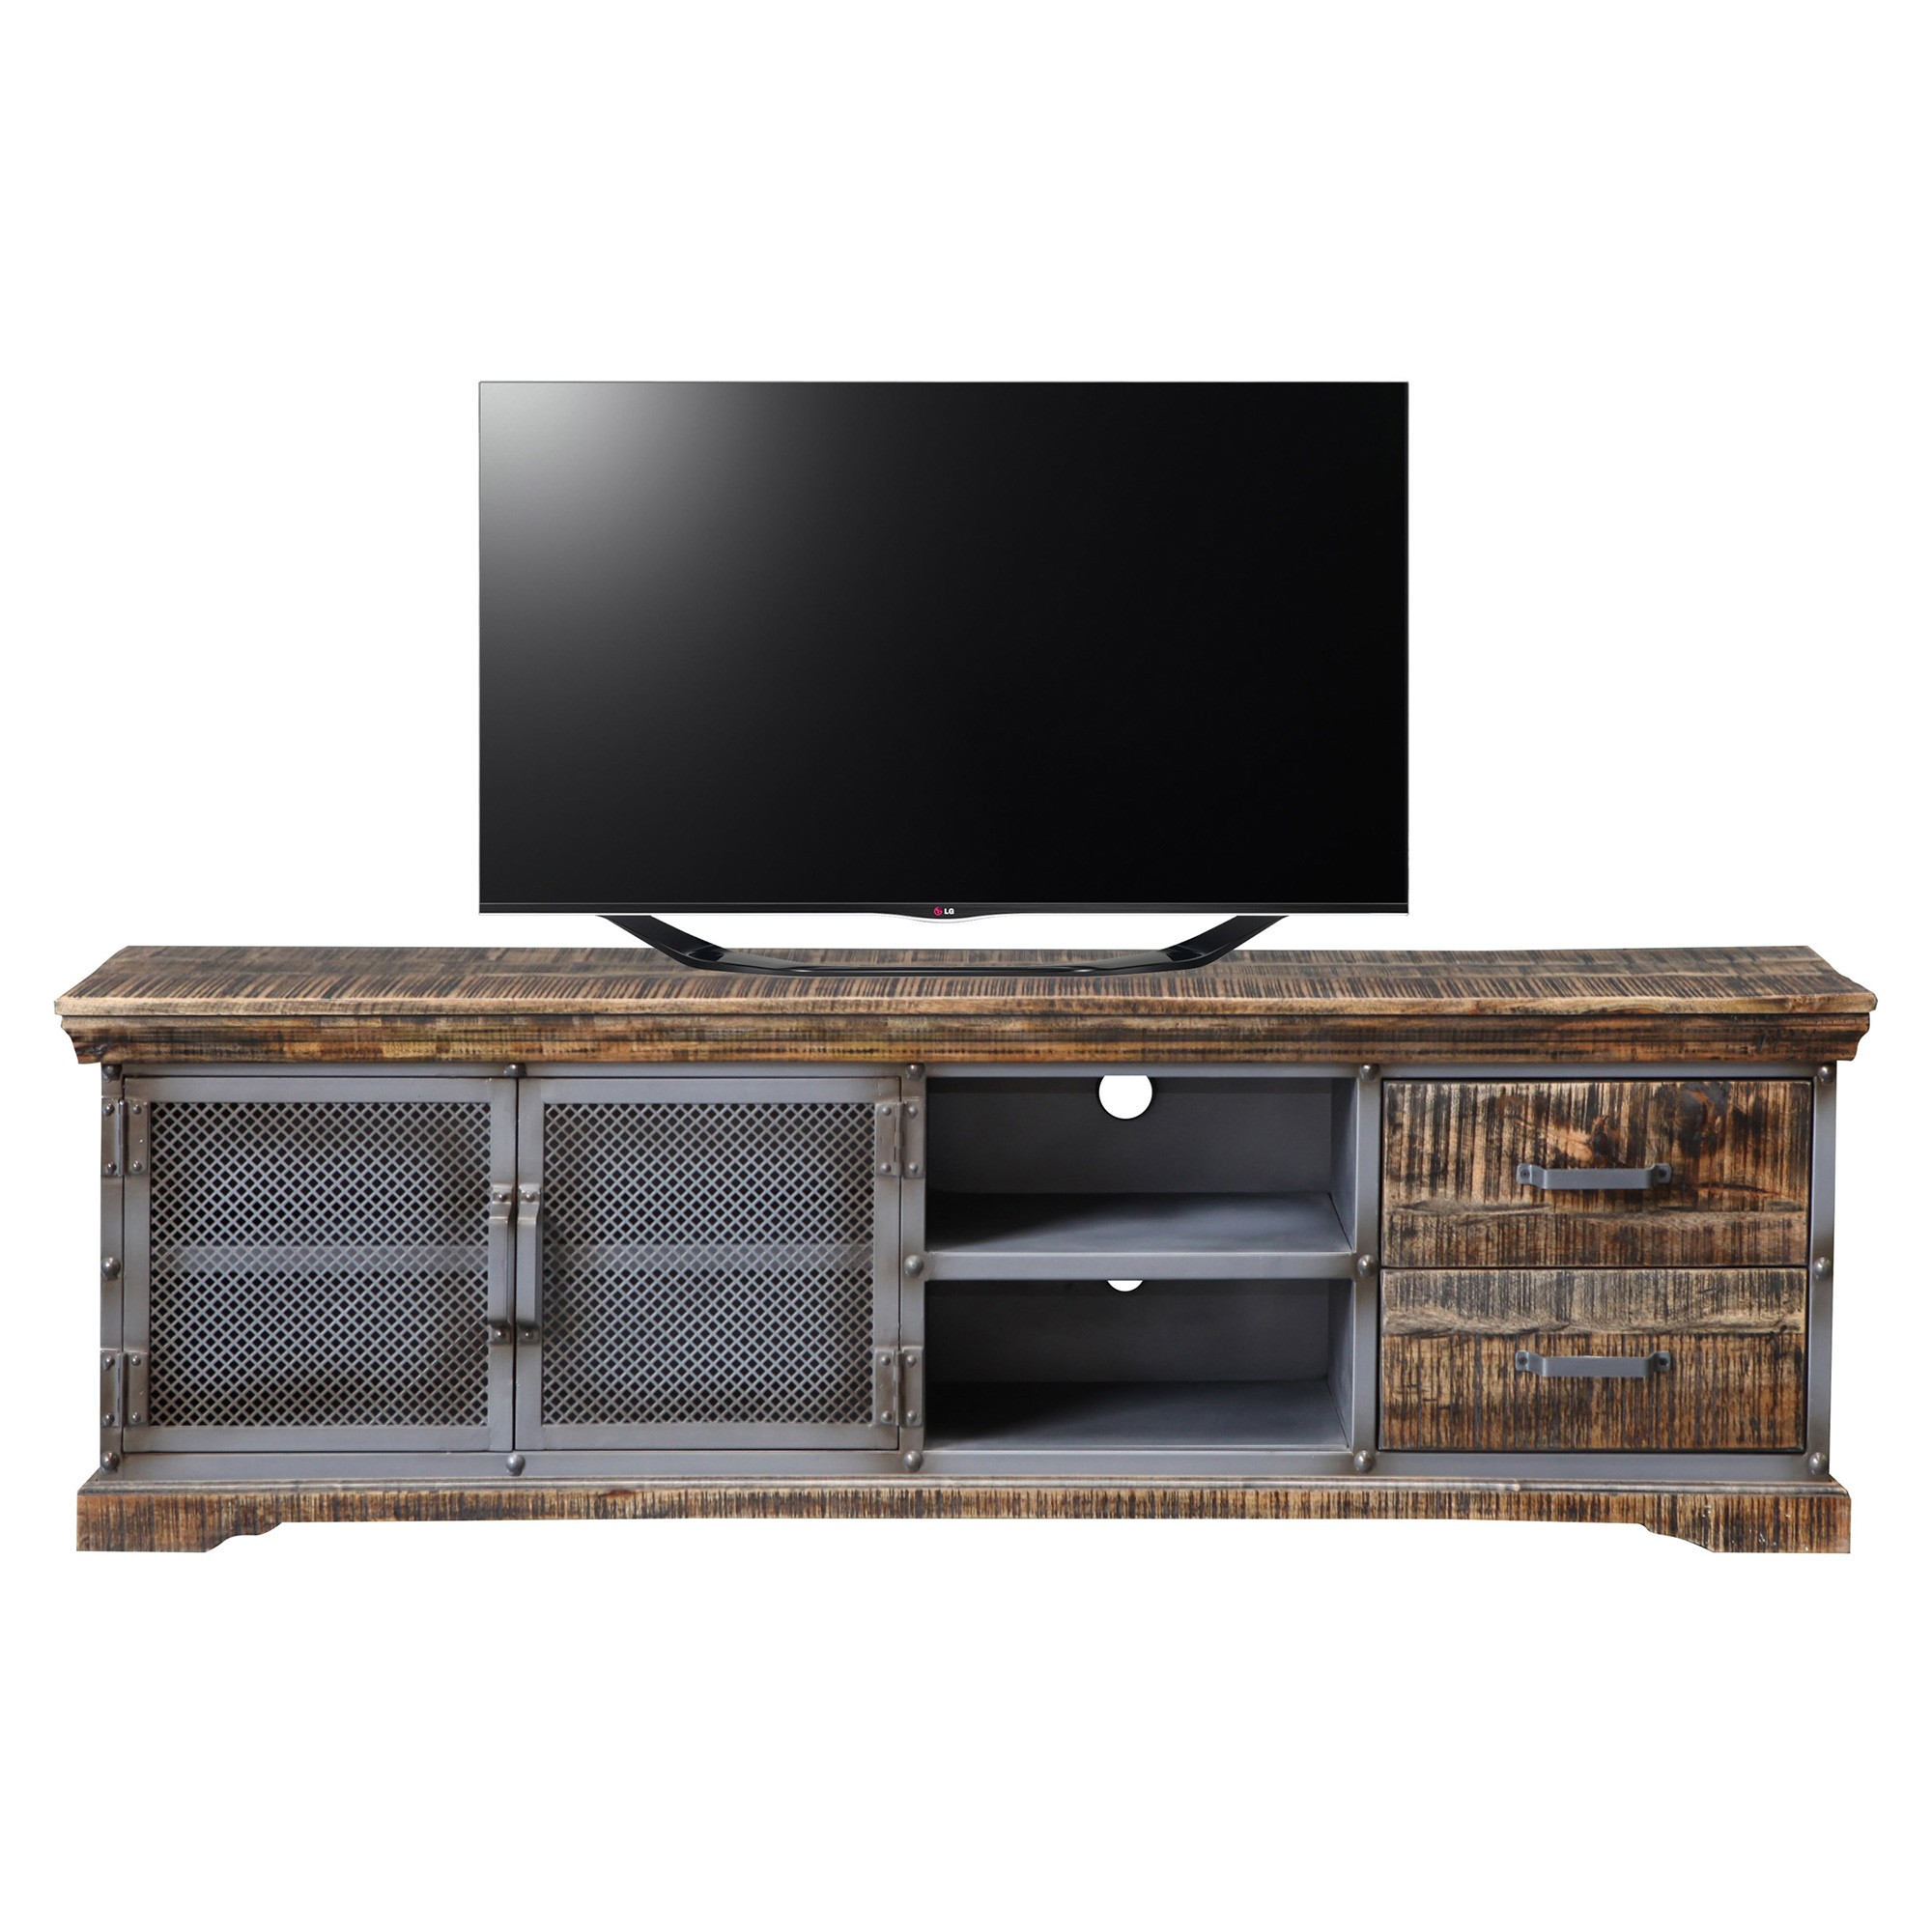 Armidale Industrial Timber & Metal 2 Door 2 Drawer TV Unit, 180cm